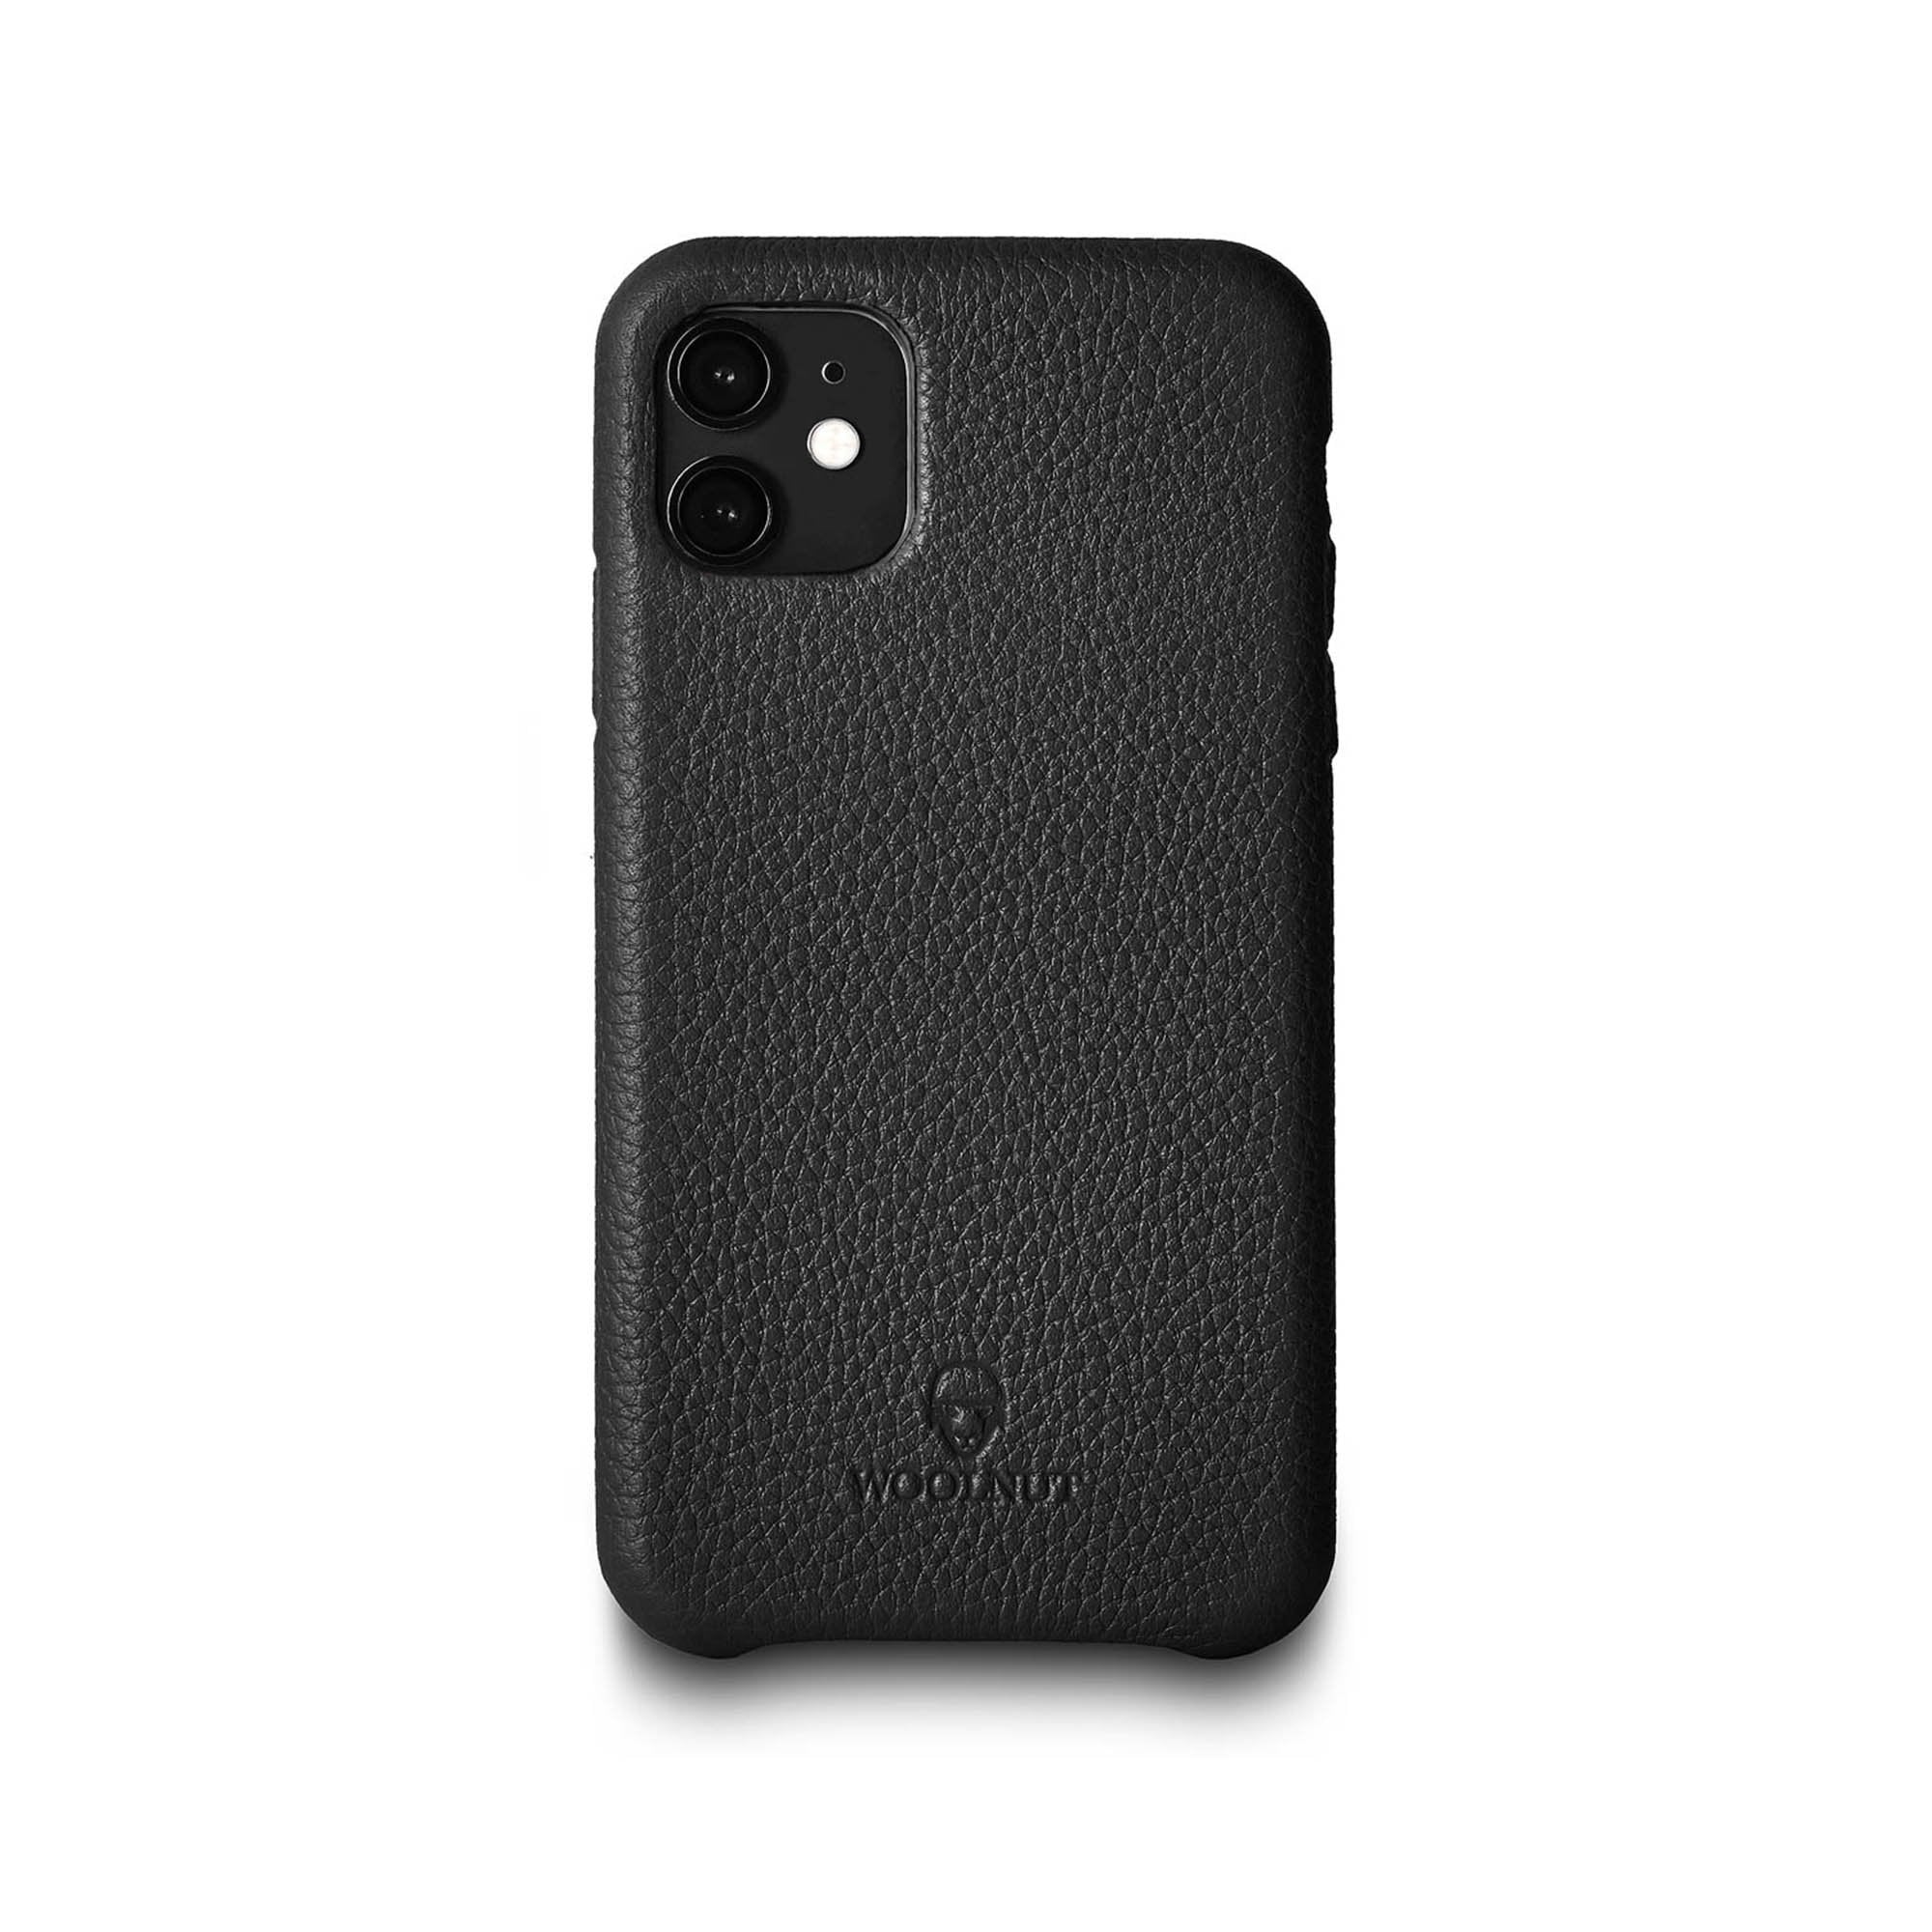 Bluemar Promotions Woolnut Leather Case for iPhone 11 in Cognac